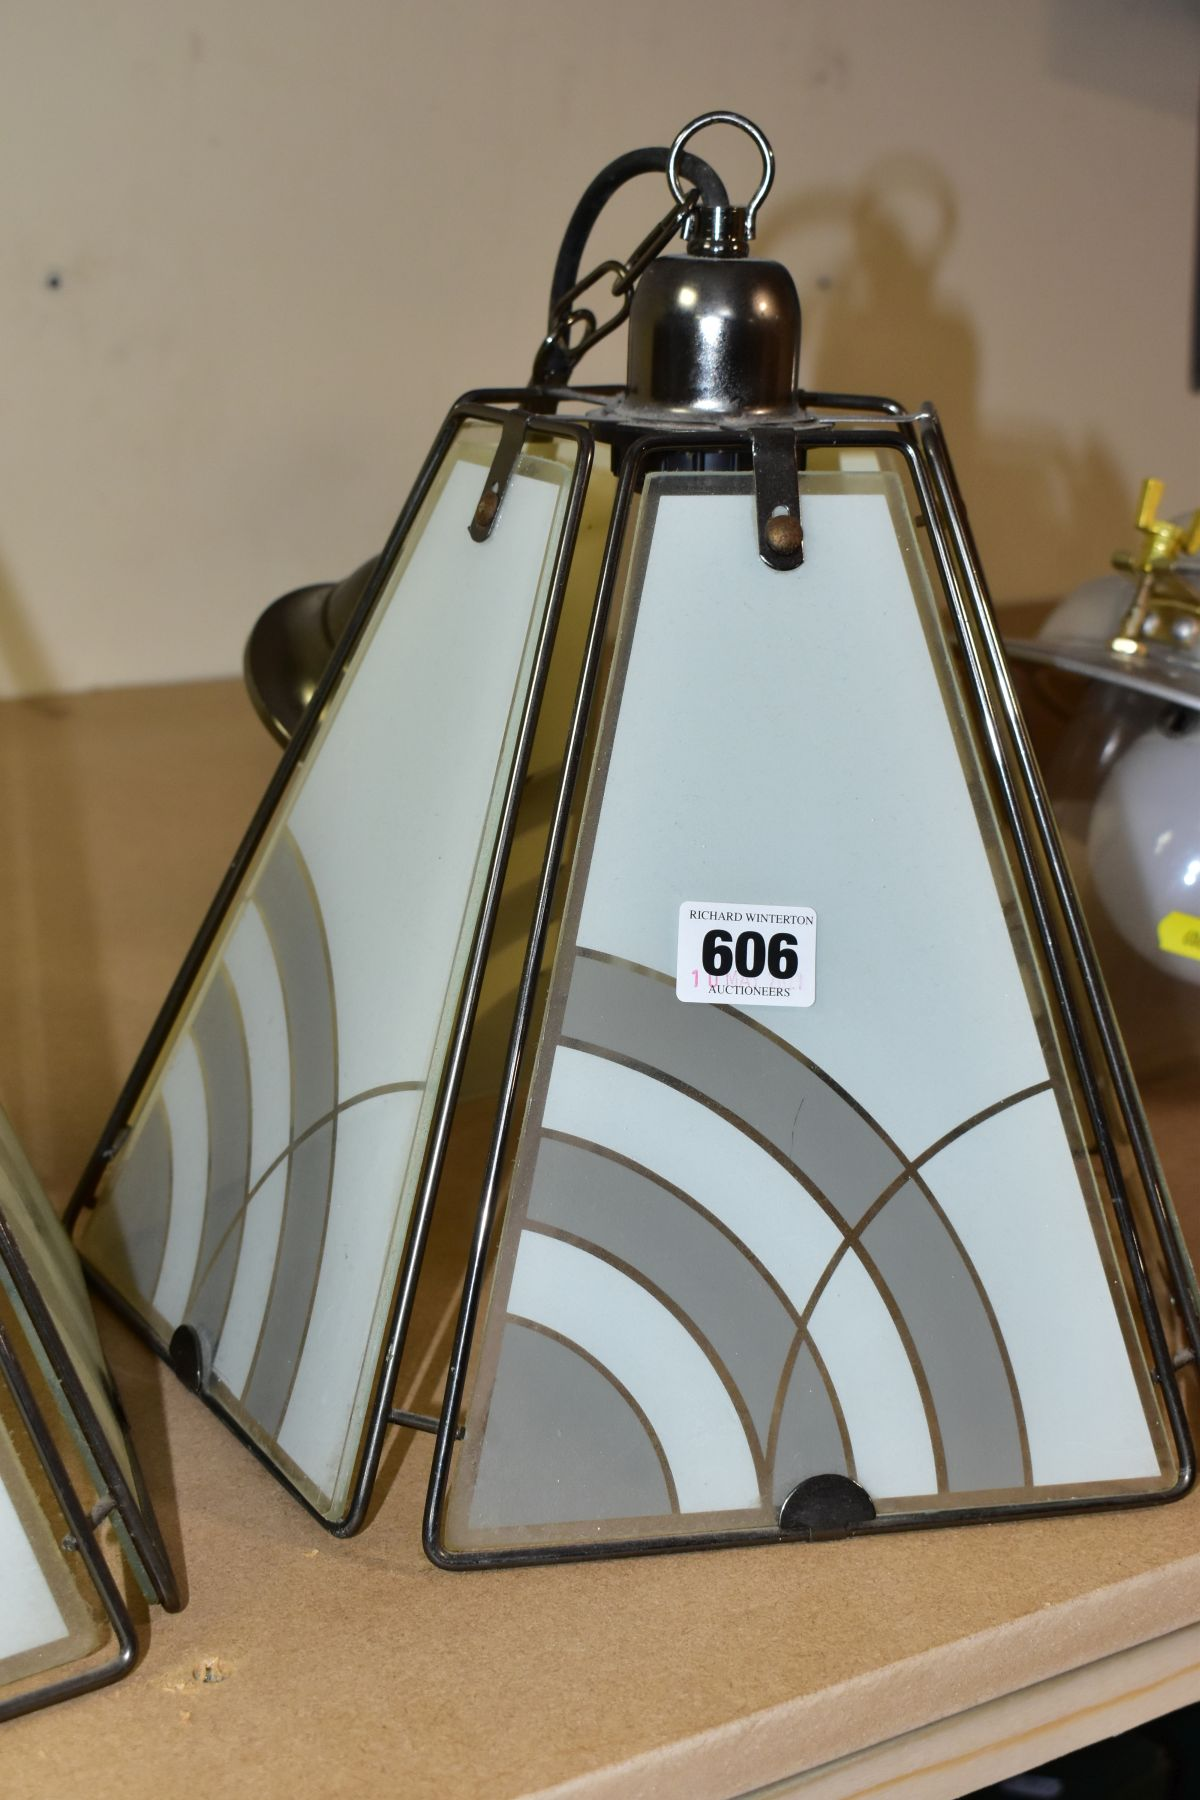 CEILING LIGHTS AND TABLE LAMP comprising a pair of pyramid shaped lamps with glass panels, - Image 3 of 6